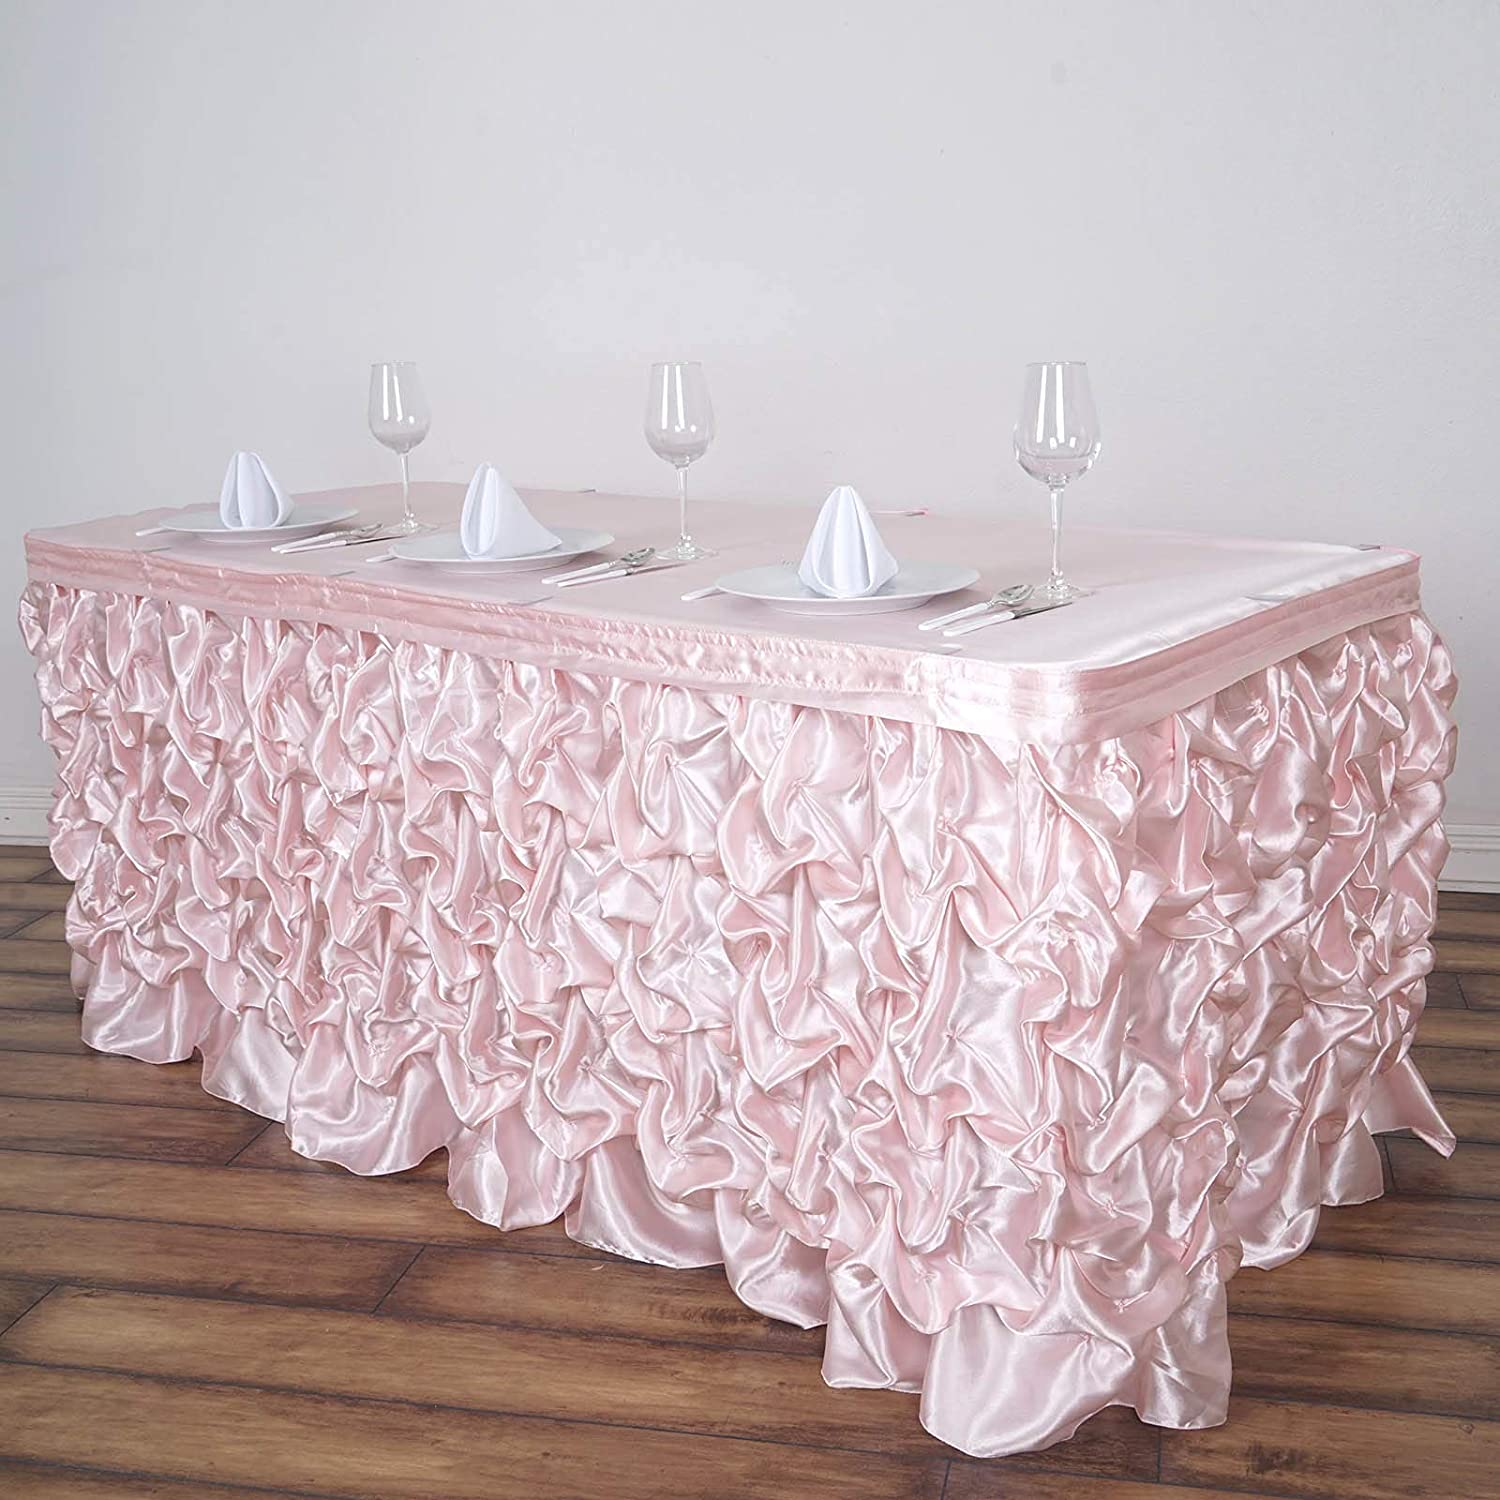 3dc457ea341c2 Amazon.com: BalsaCircle 21 feet x 29-Inch Blush Ruched Lamour Satin Banquet Table  Skirt Linens Wedding Party Events Decorations Kitchen Dining: Kitchen & ...